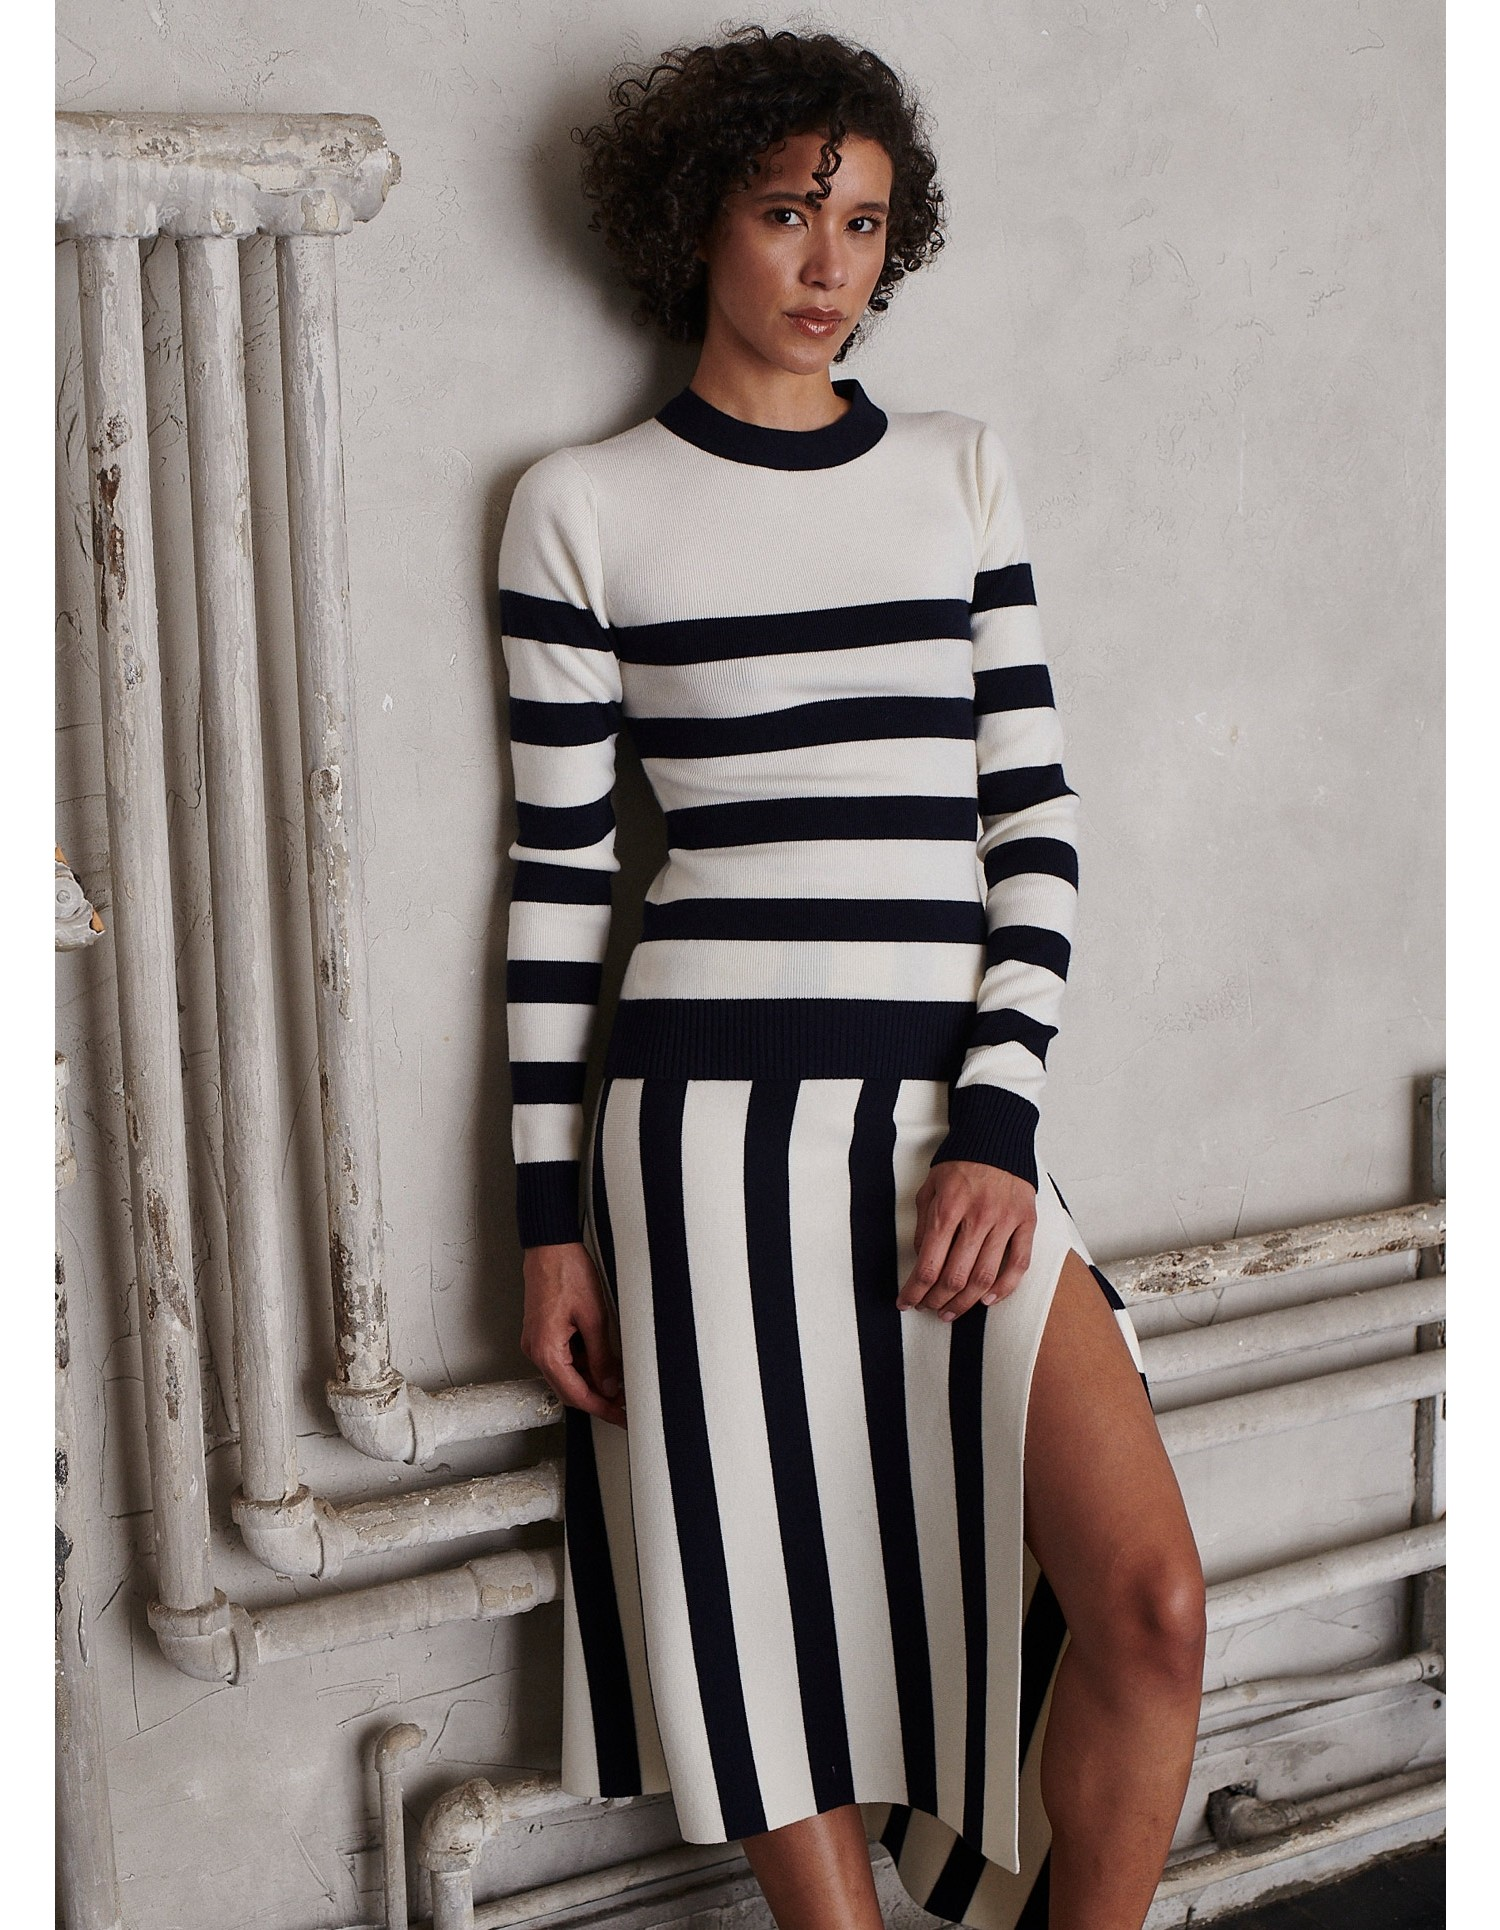 MONSE Cut Out Stripe Knit Top in Midnight and Ivory on Model Front View